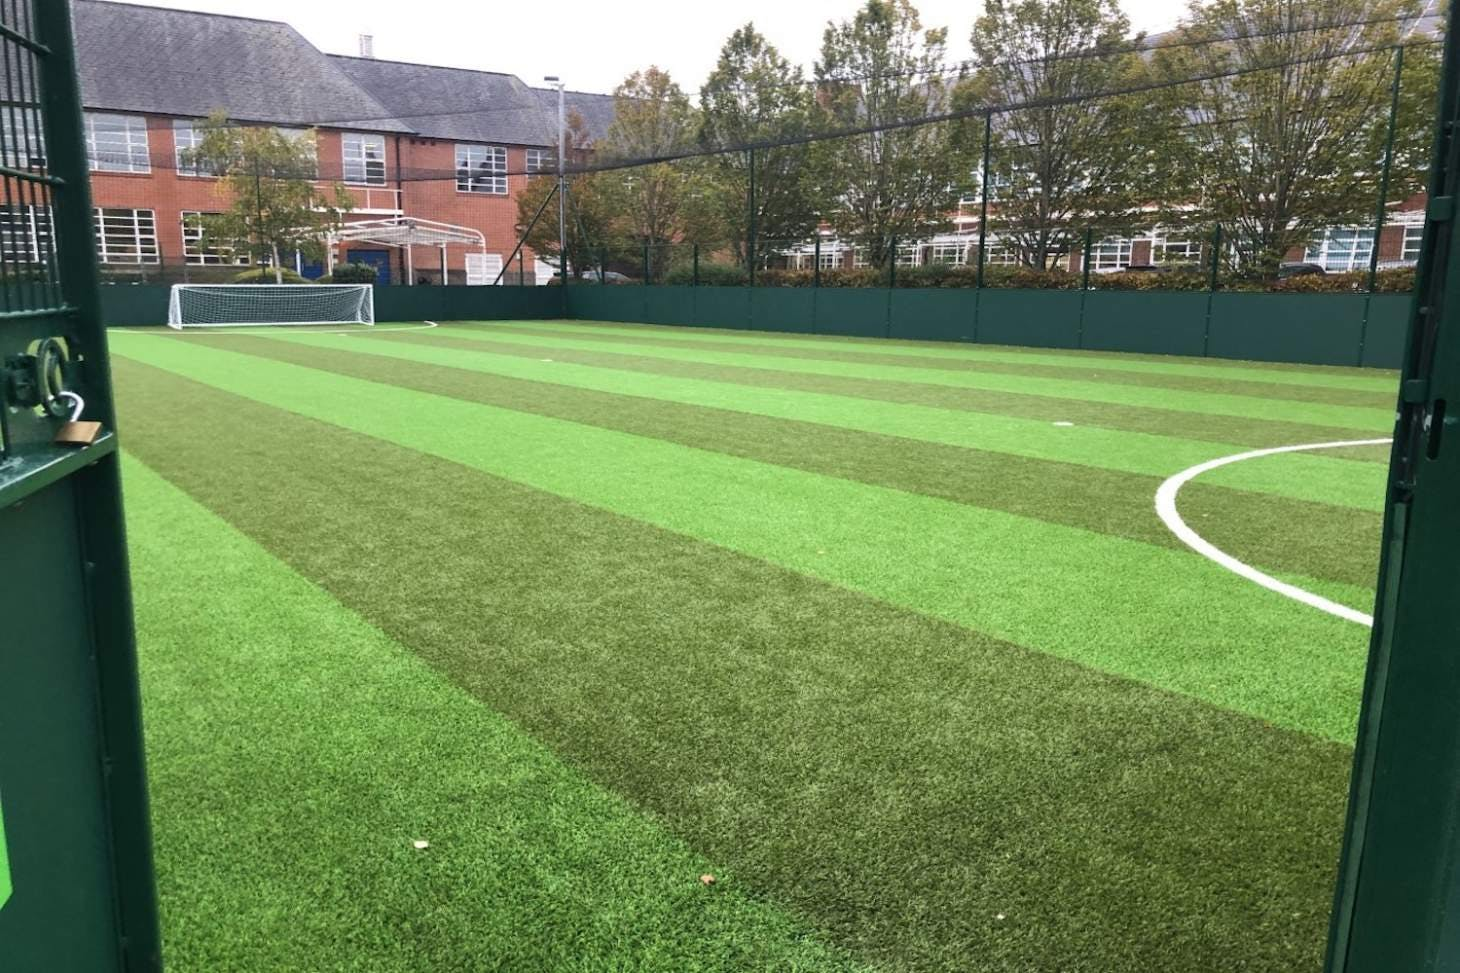 Powerleague Harrow 5 a side | 3G Astroturf football pitch